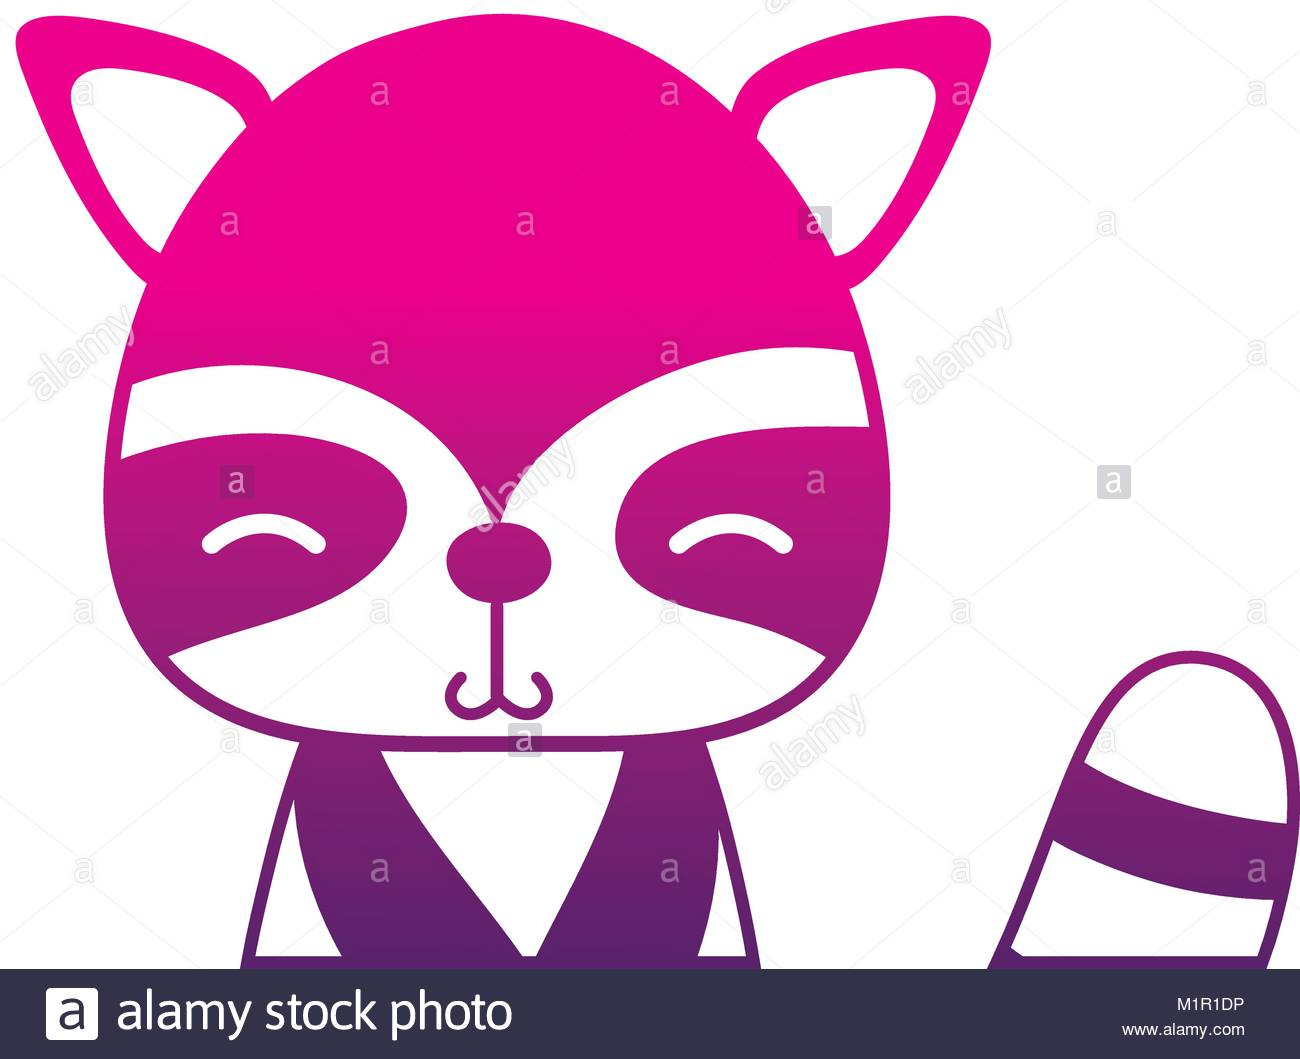 1300x1059 Color Silhouette Adorable And Shy Raccoon Wild Animal Stock Vector